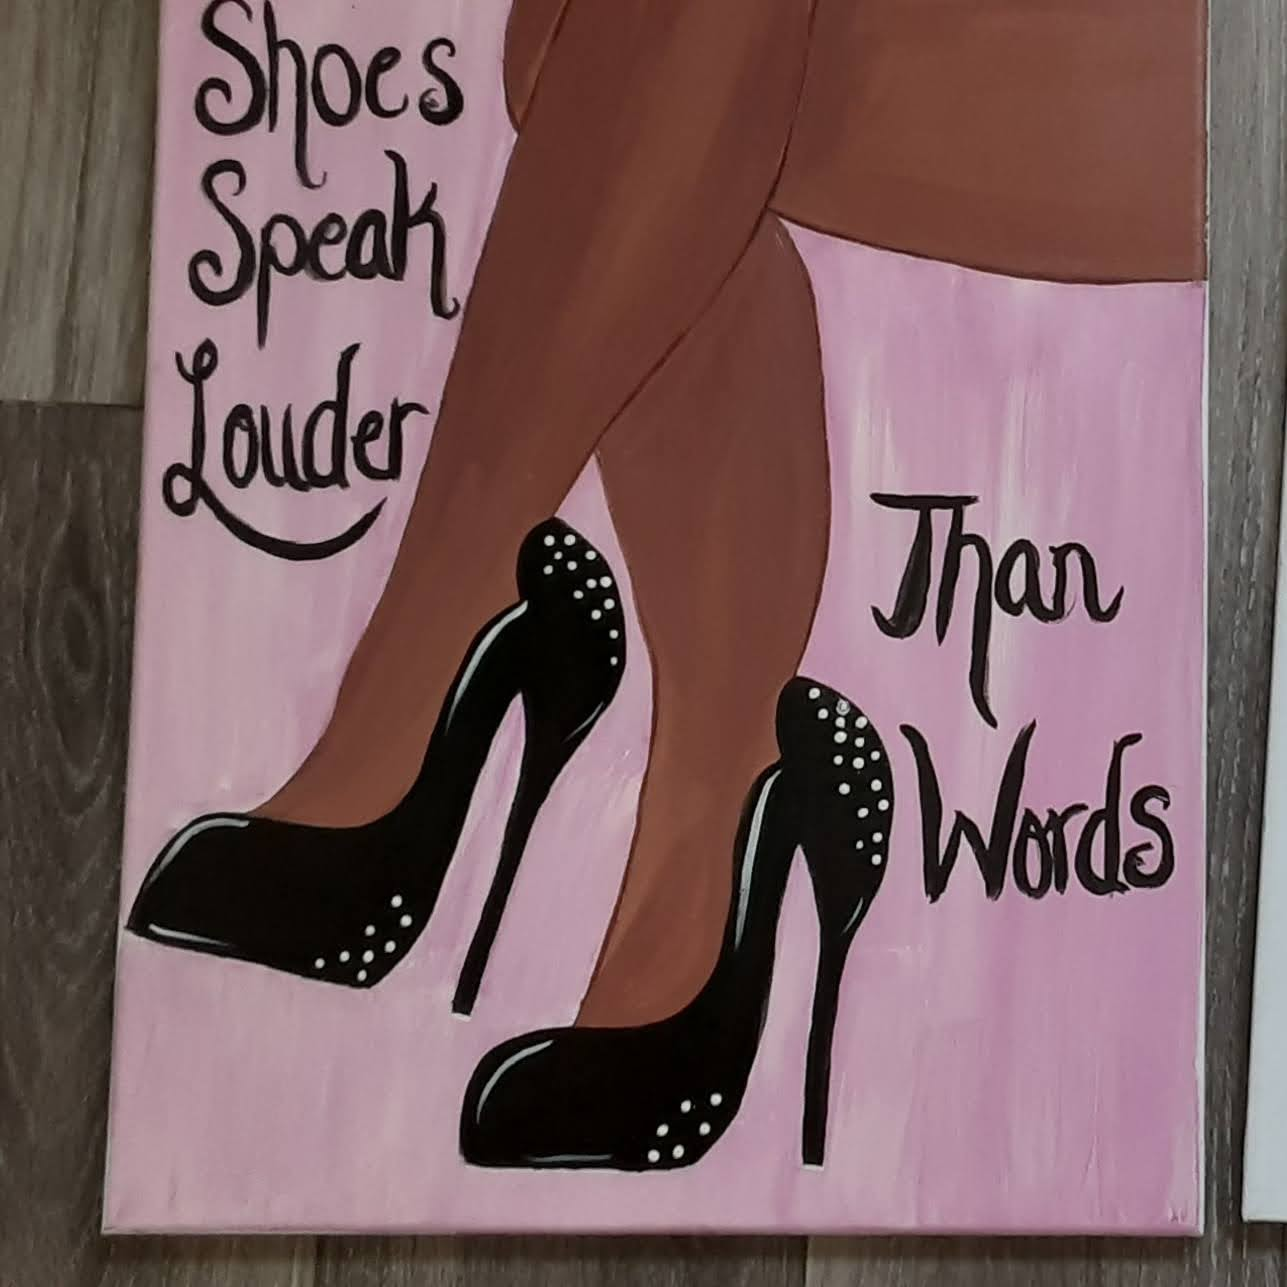 Shoes speak louder than worlds